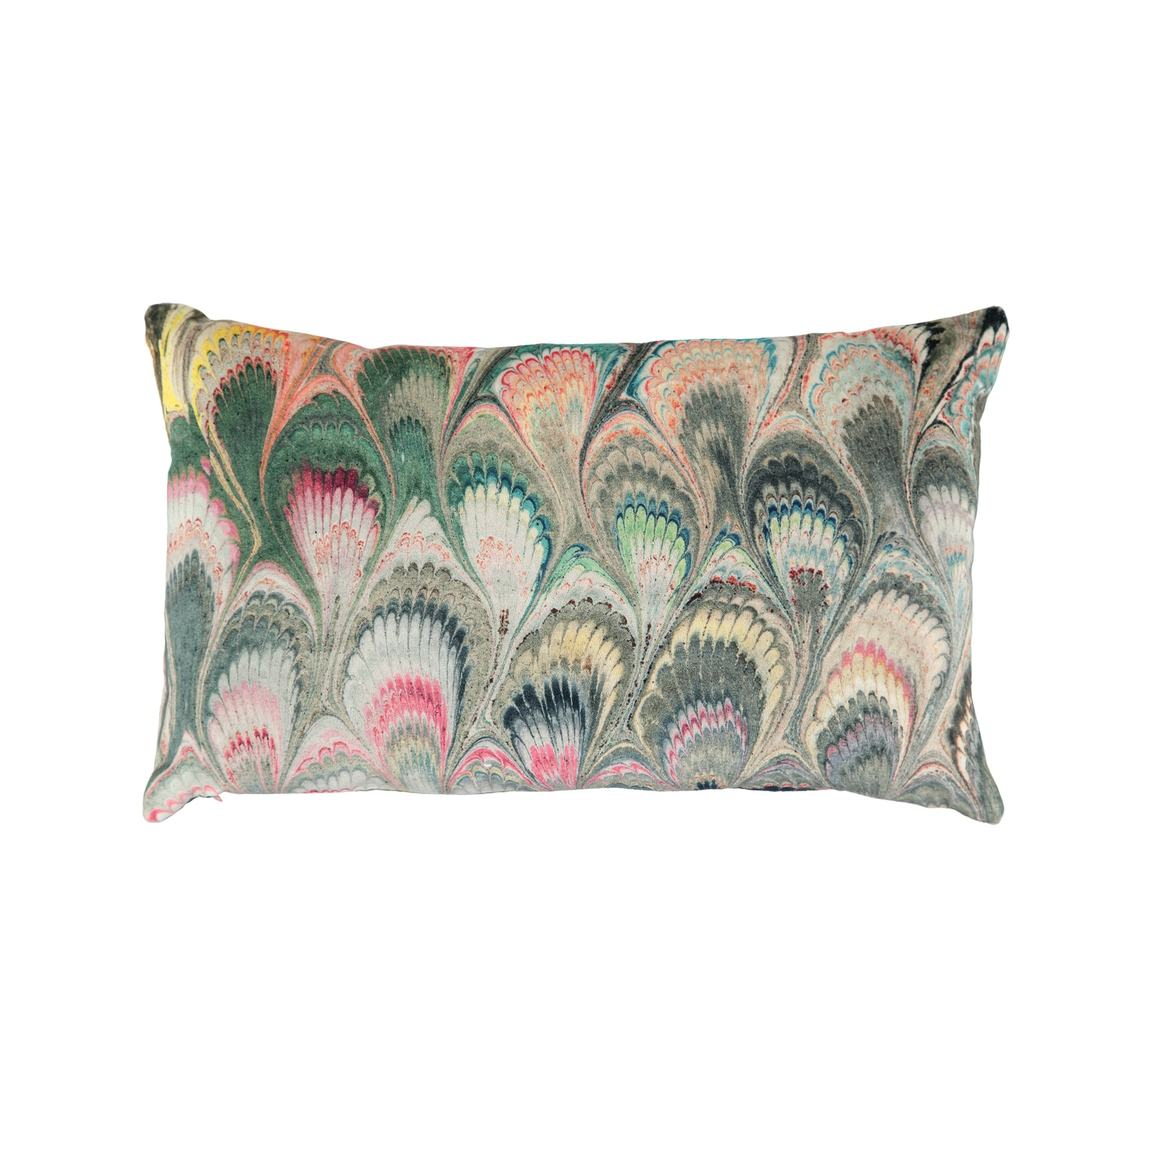 Marbleized Velvet Scatter Cushion